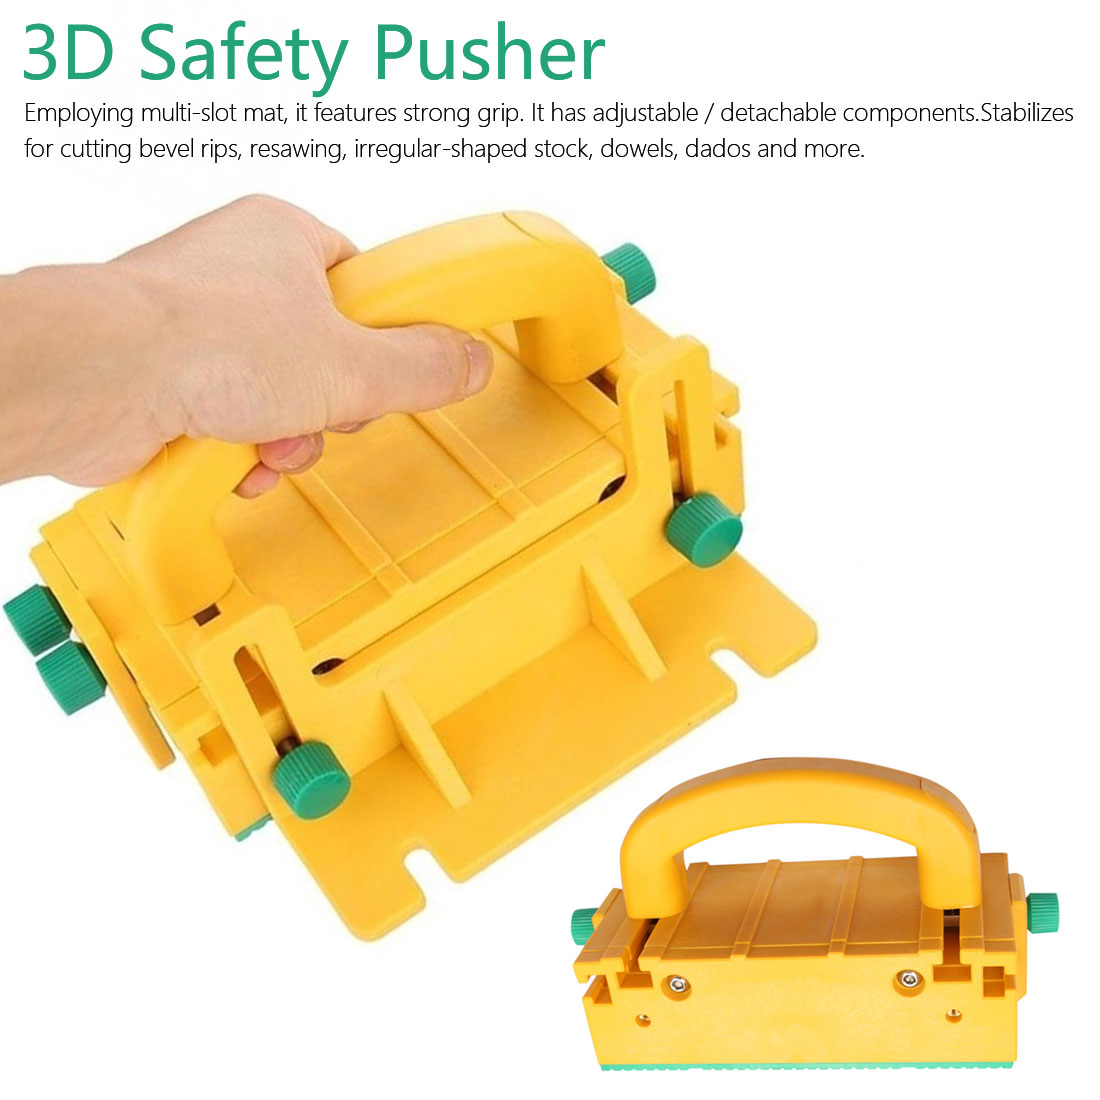 3D Safety Pusher Woodworking Flip Table Saw Vertical Milling Planer Saw Pusher Safety Feeder Woodworking Safety Assistant Tools